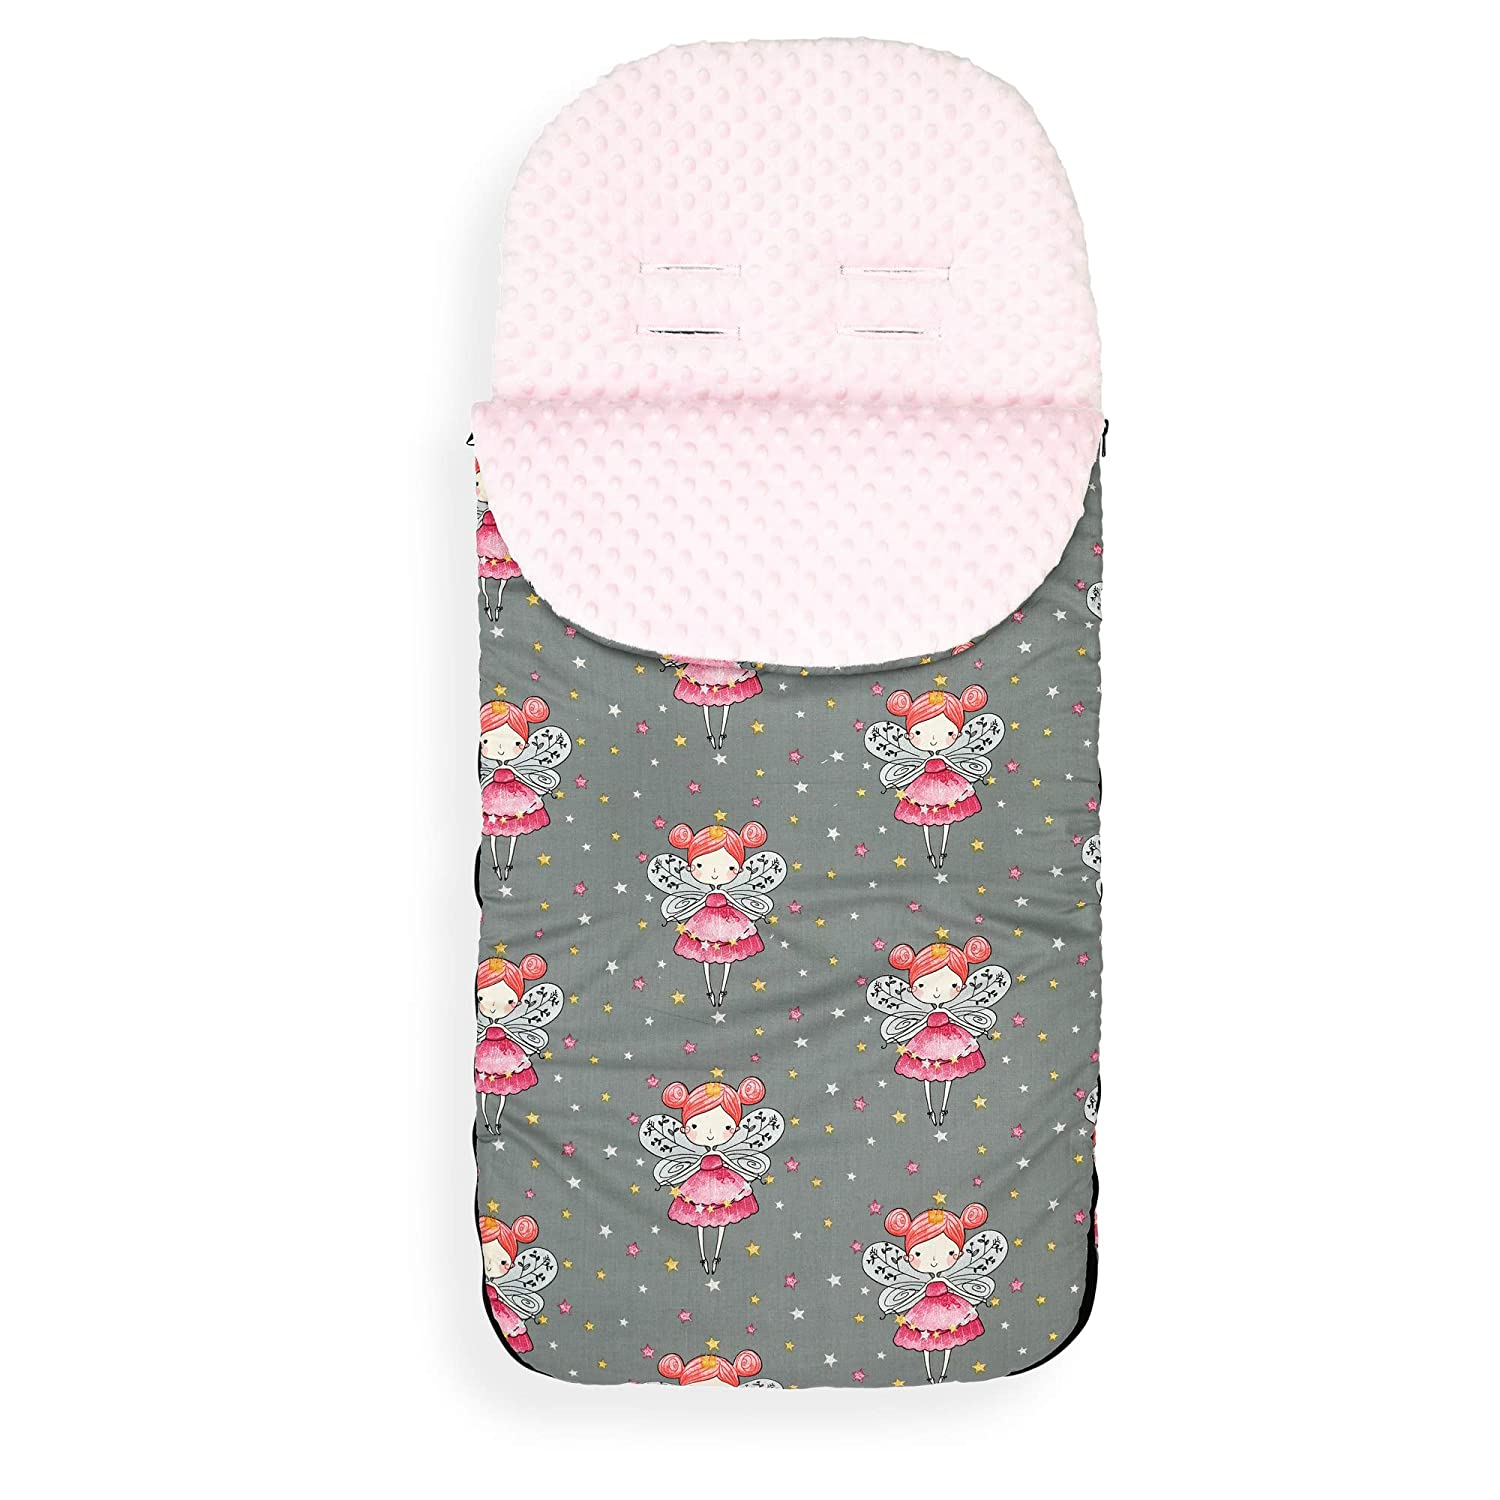 Cotton Zoo//Mint Minky Universal Baby Stroller cosytoes Liner Buggy Luxury Padded Footmuff